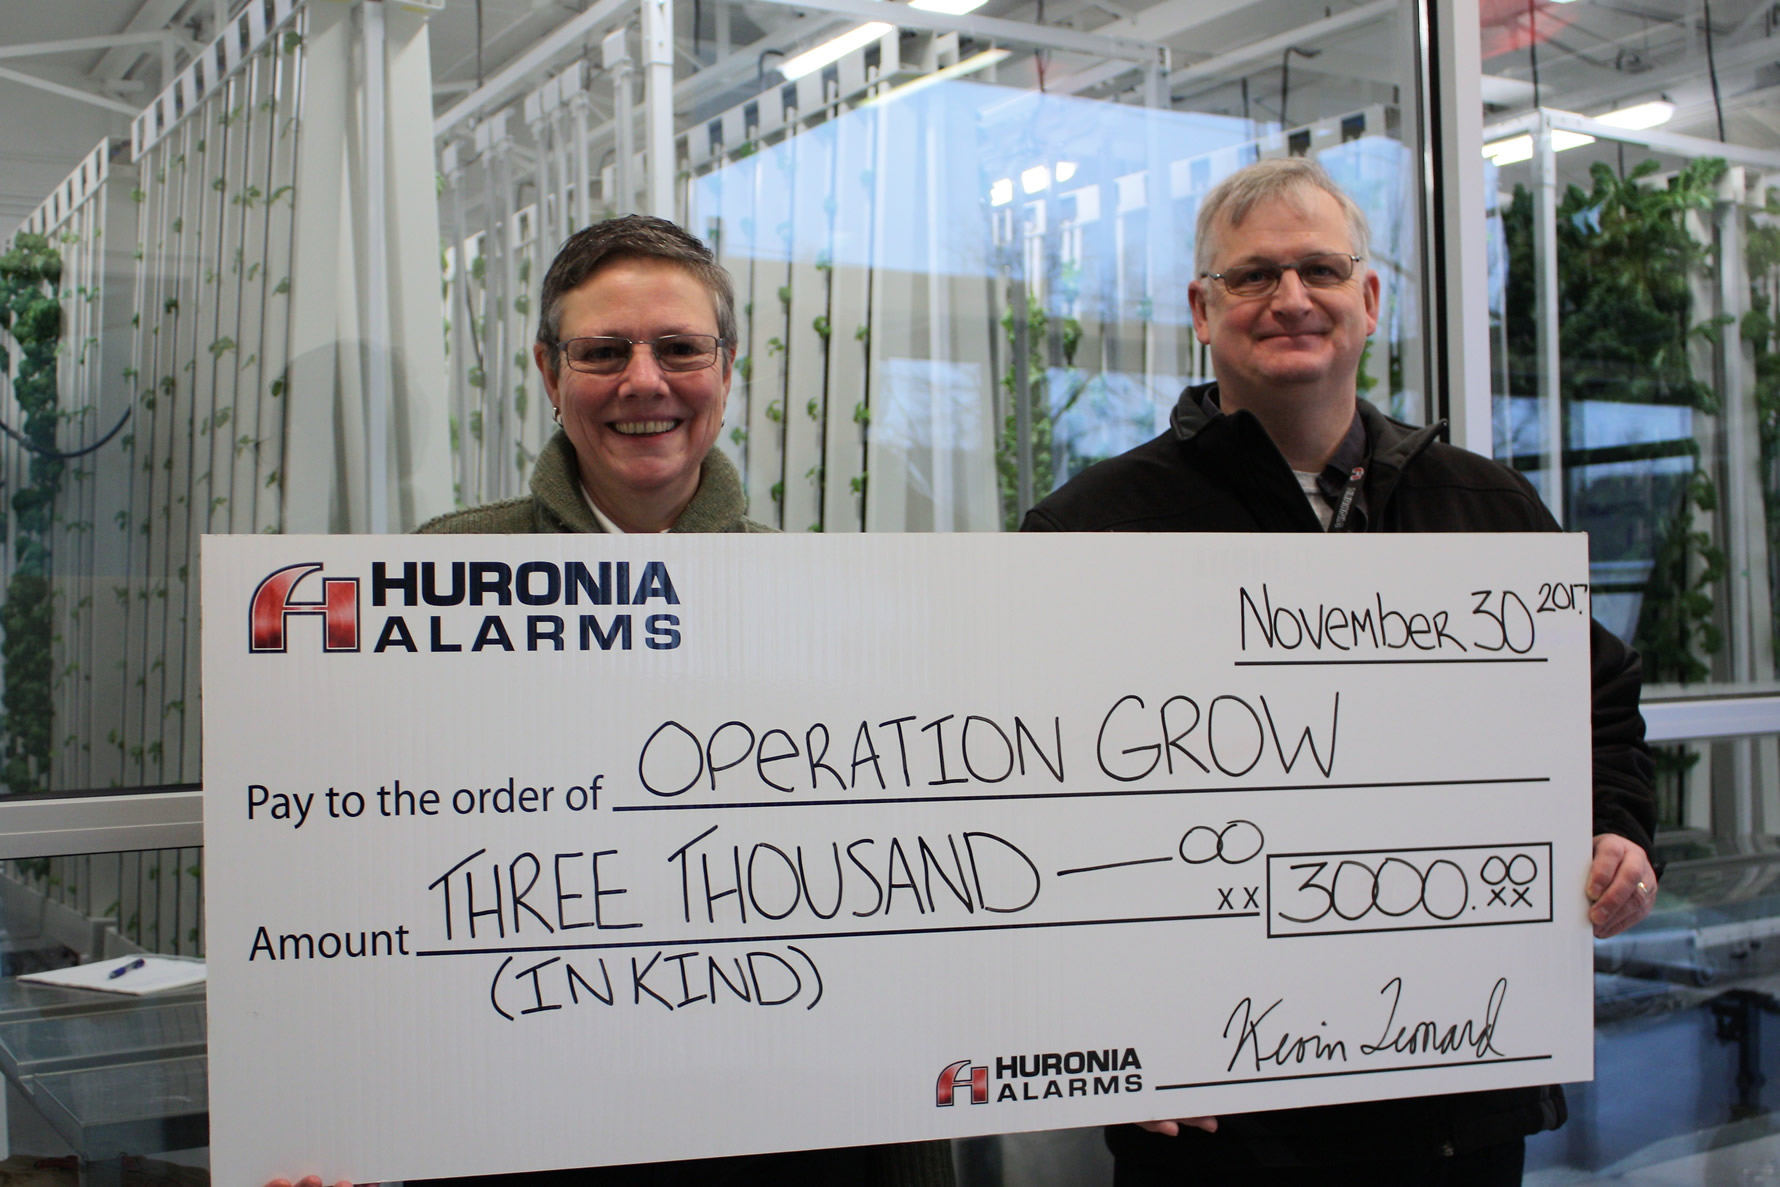 Huronia Alarm & Fire Security Inc. makes donation-in-kind to Operation Grow